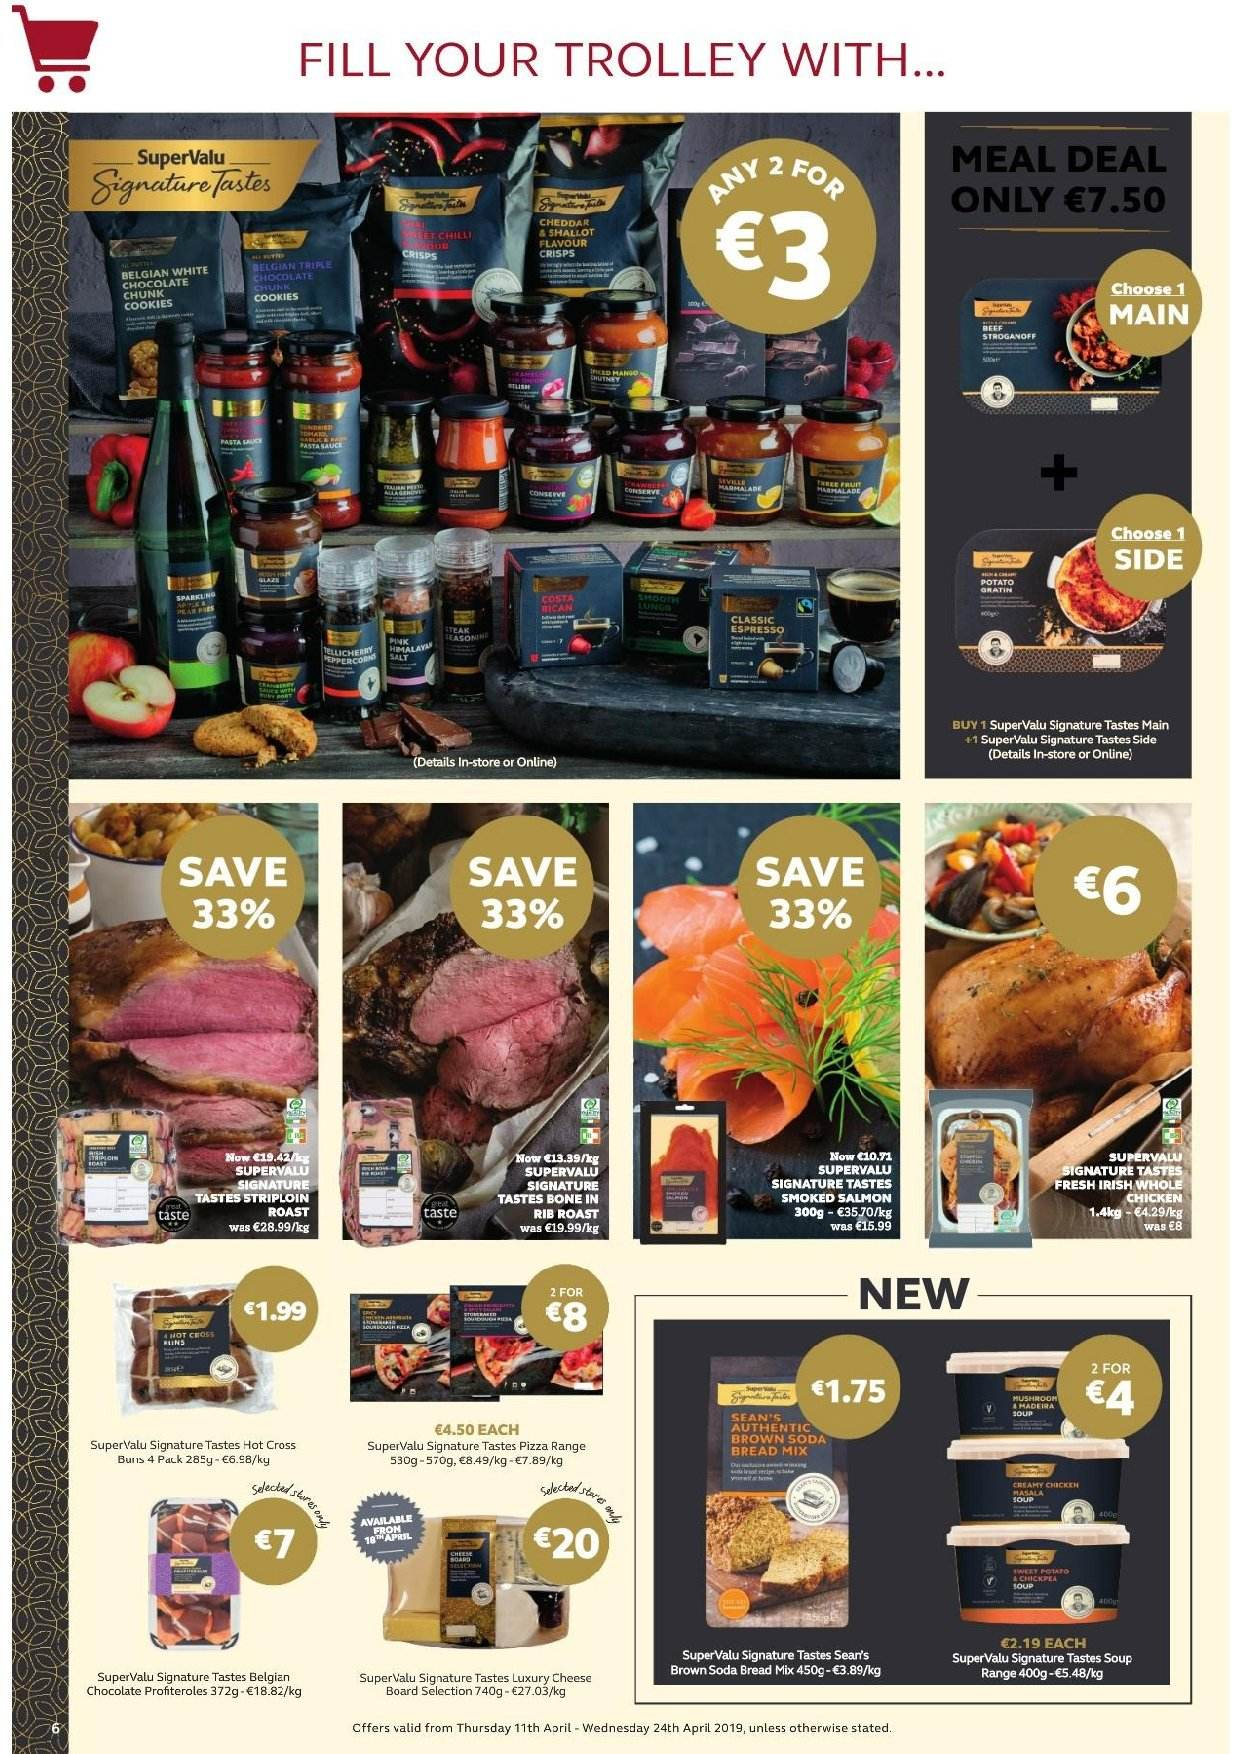 SuperValu offer  - 11.4.2019 - 24.4.2019 - Sales products - bread, soda bread, salmon, smoked salmon, pizza, cheddar, cheese, cookies, chocolate, whole chicken, chicken, trolley. Page 11.